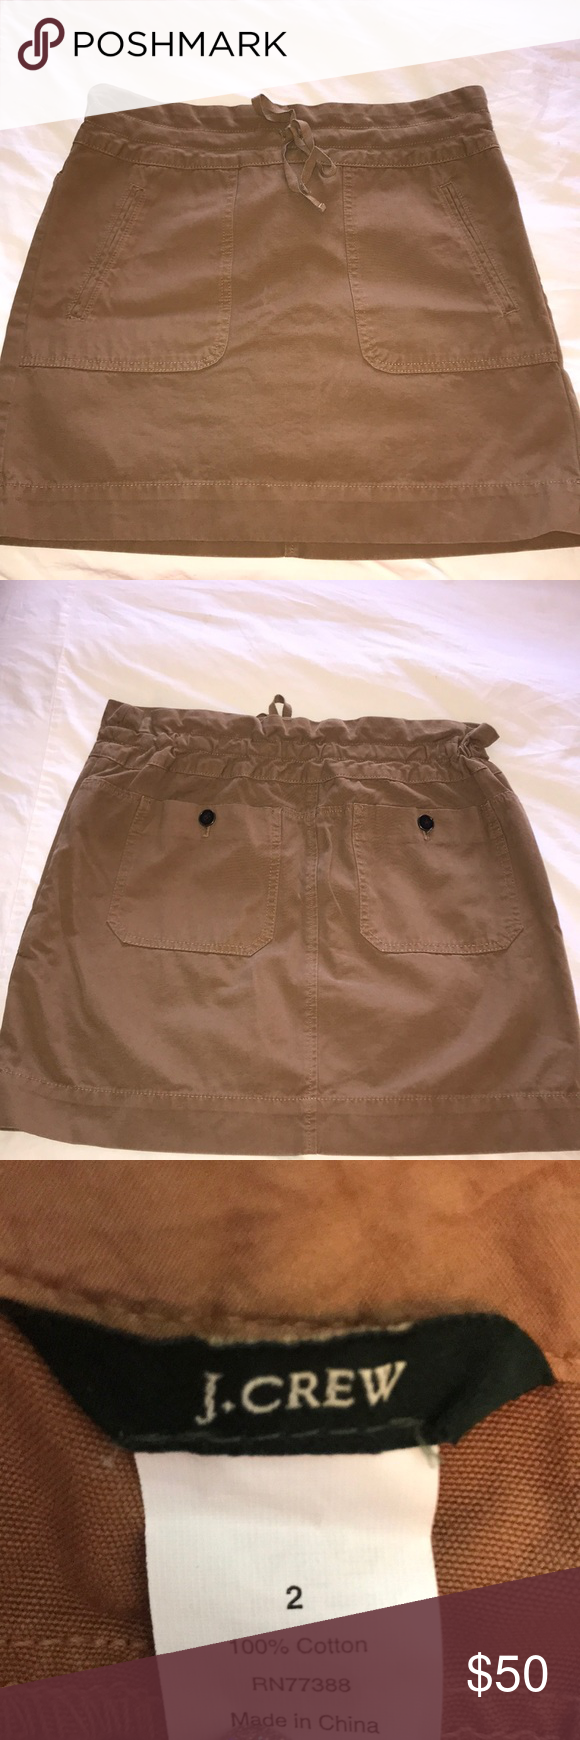 J Crew Skirt Camel Colored Straight Great Condition Skirts Mini